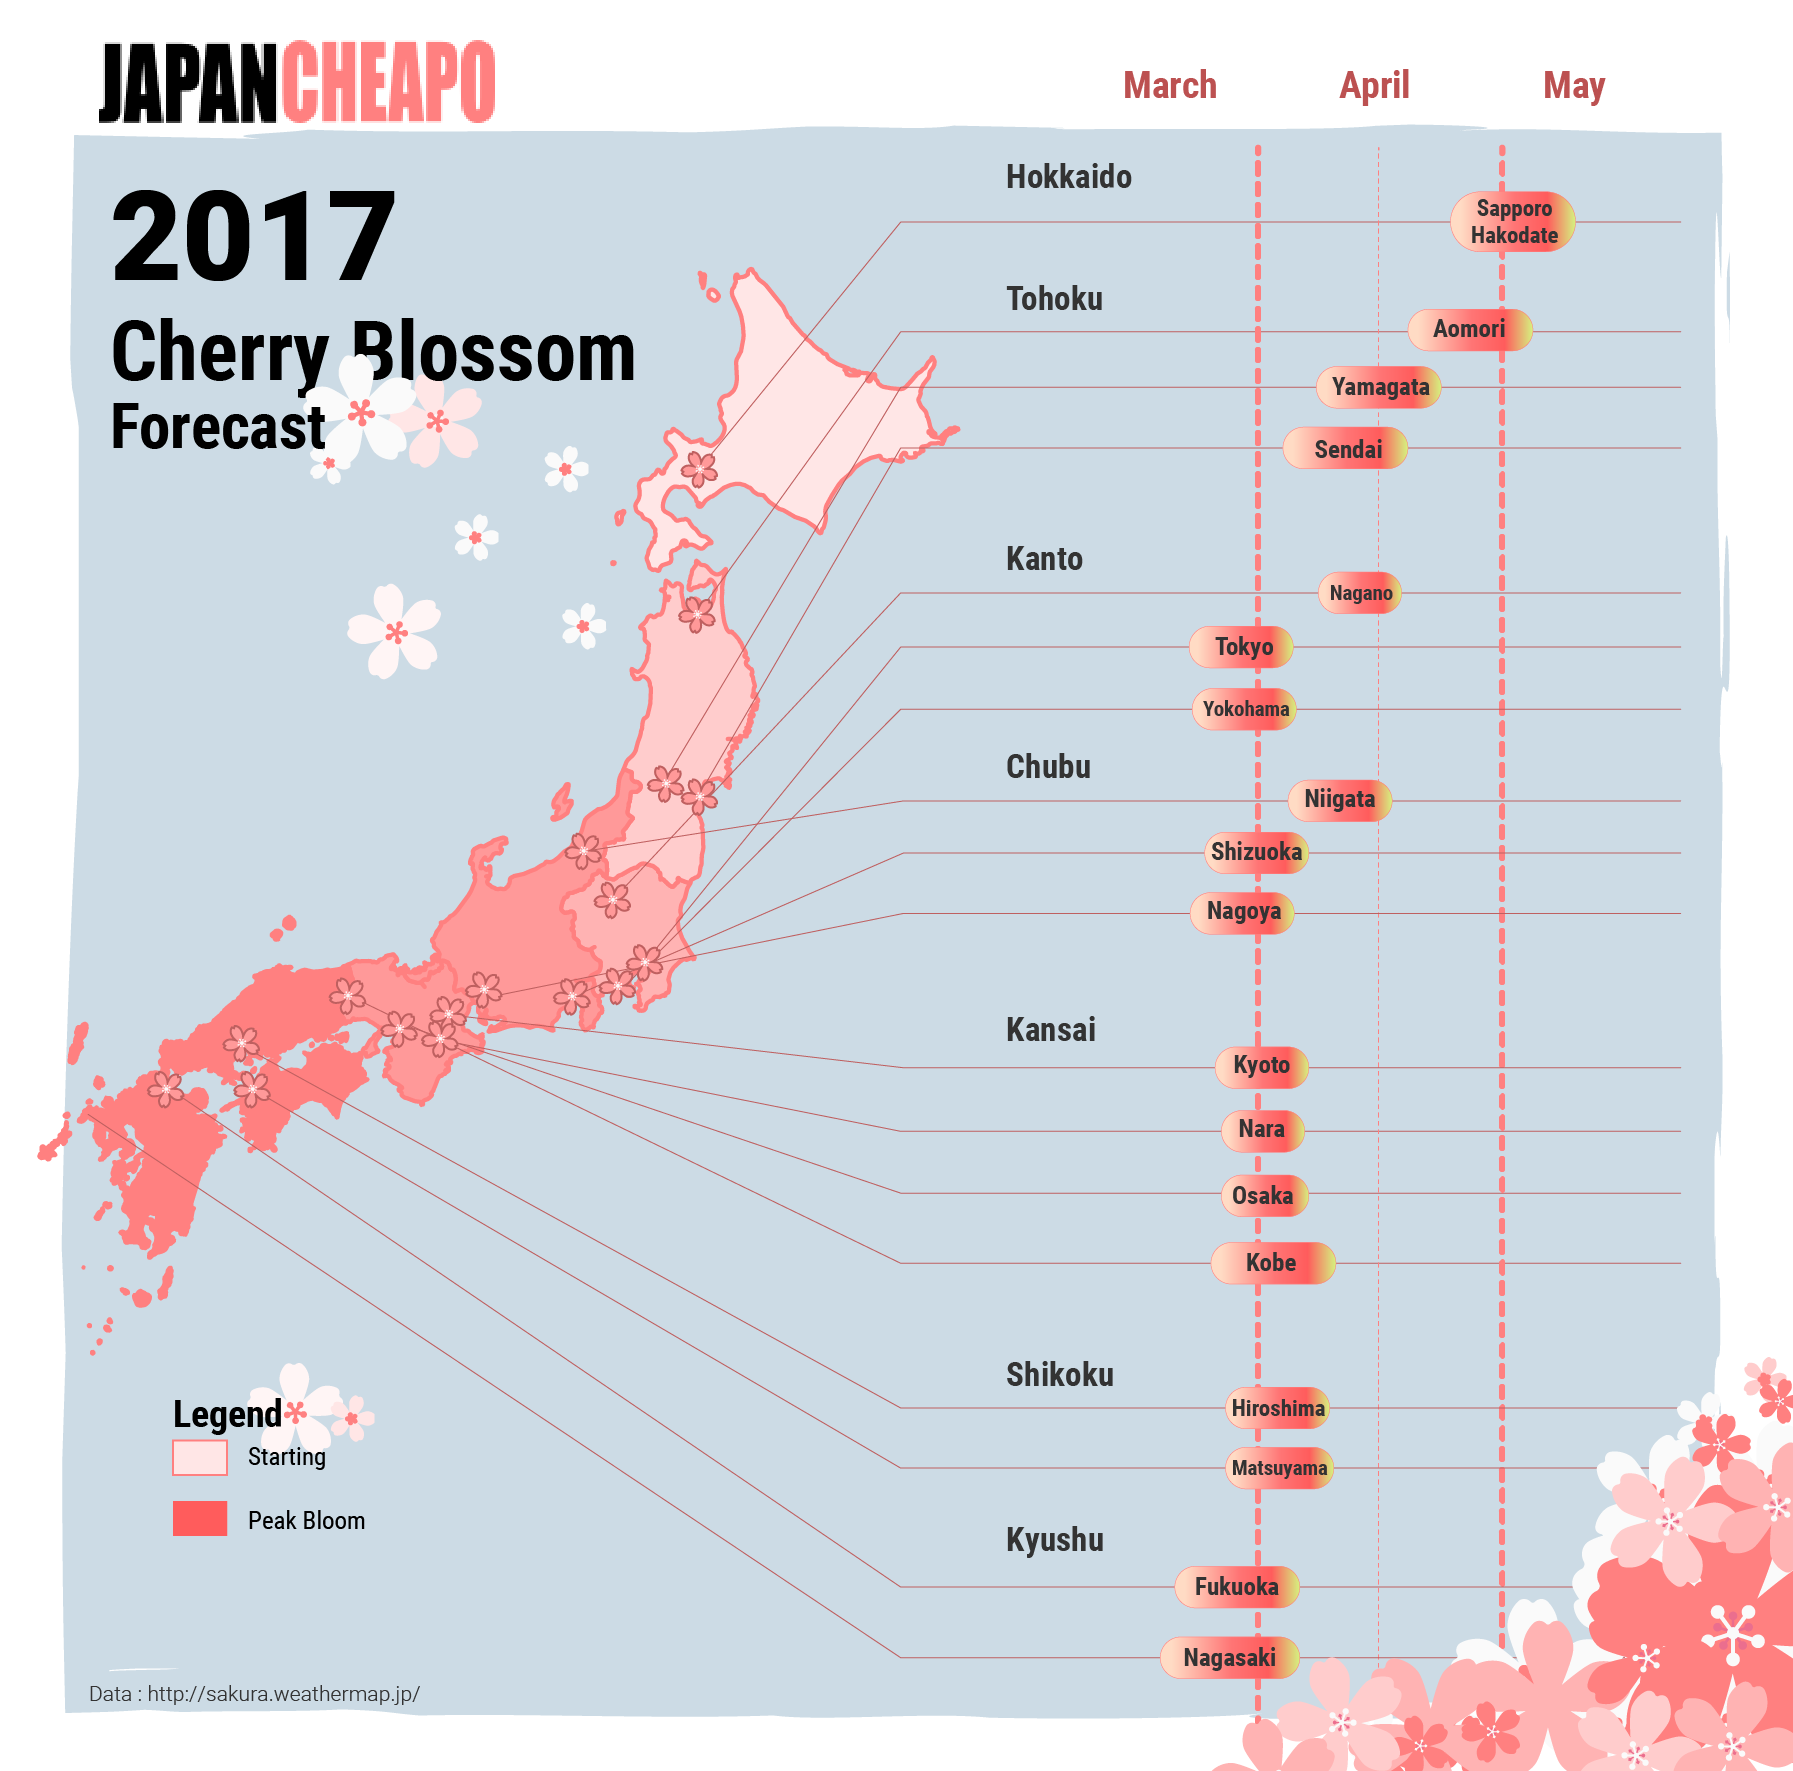 26 Tokyo Sakura Spots: Cherry Blossom Mega Guide | Tokyo Cheapo on iris map, beach map, cherry blue, banana map, cocoa map, strawberry map, honeysuckle map, tree map, coconut map, pineapple map, coffee map, butterfly map, dragonfly map, marathon map, bamboo map, cherry blossoms bloom washington dc, champagne map,